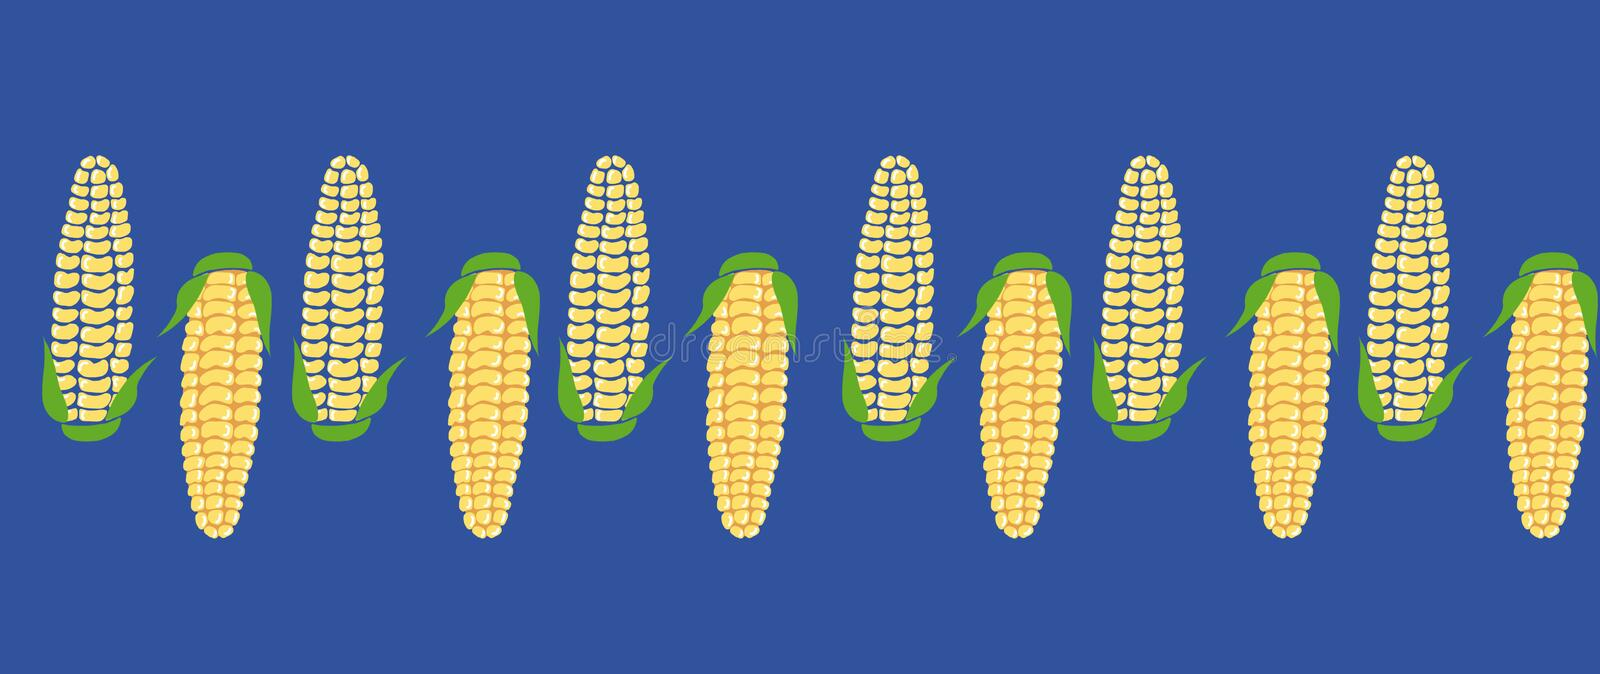 Pattern seamless horizontal of hand drawn yellow corn cobs with green leaves on blue background. royalty free illustration